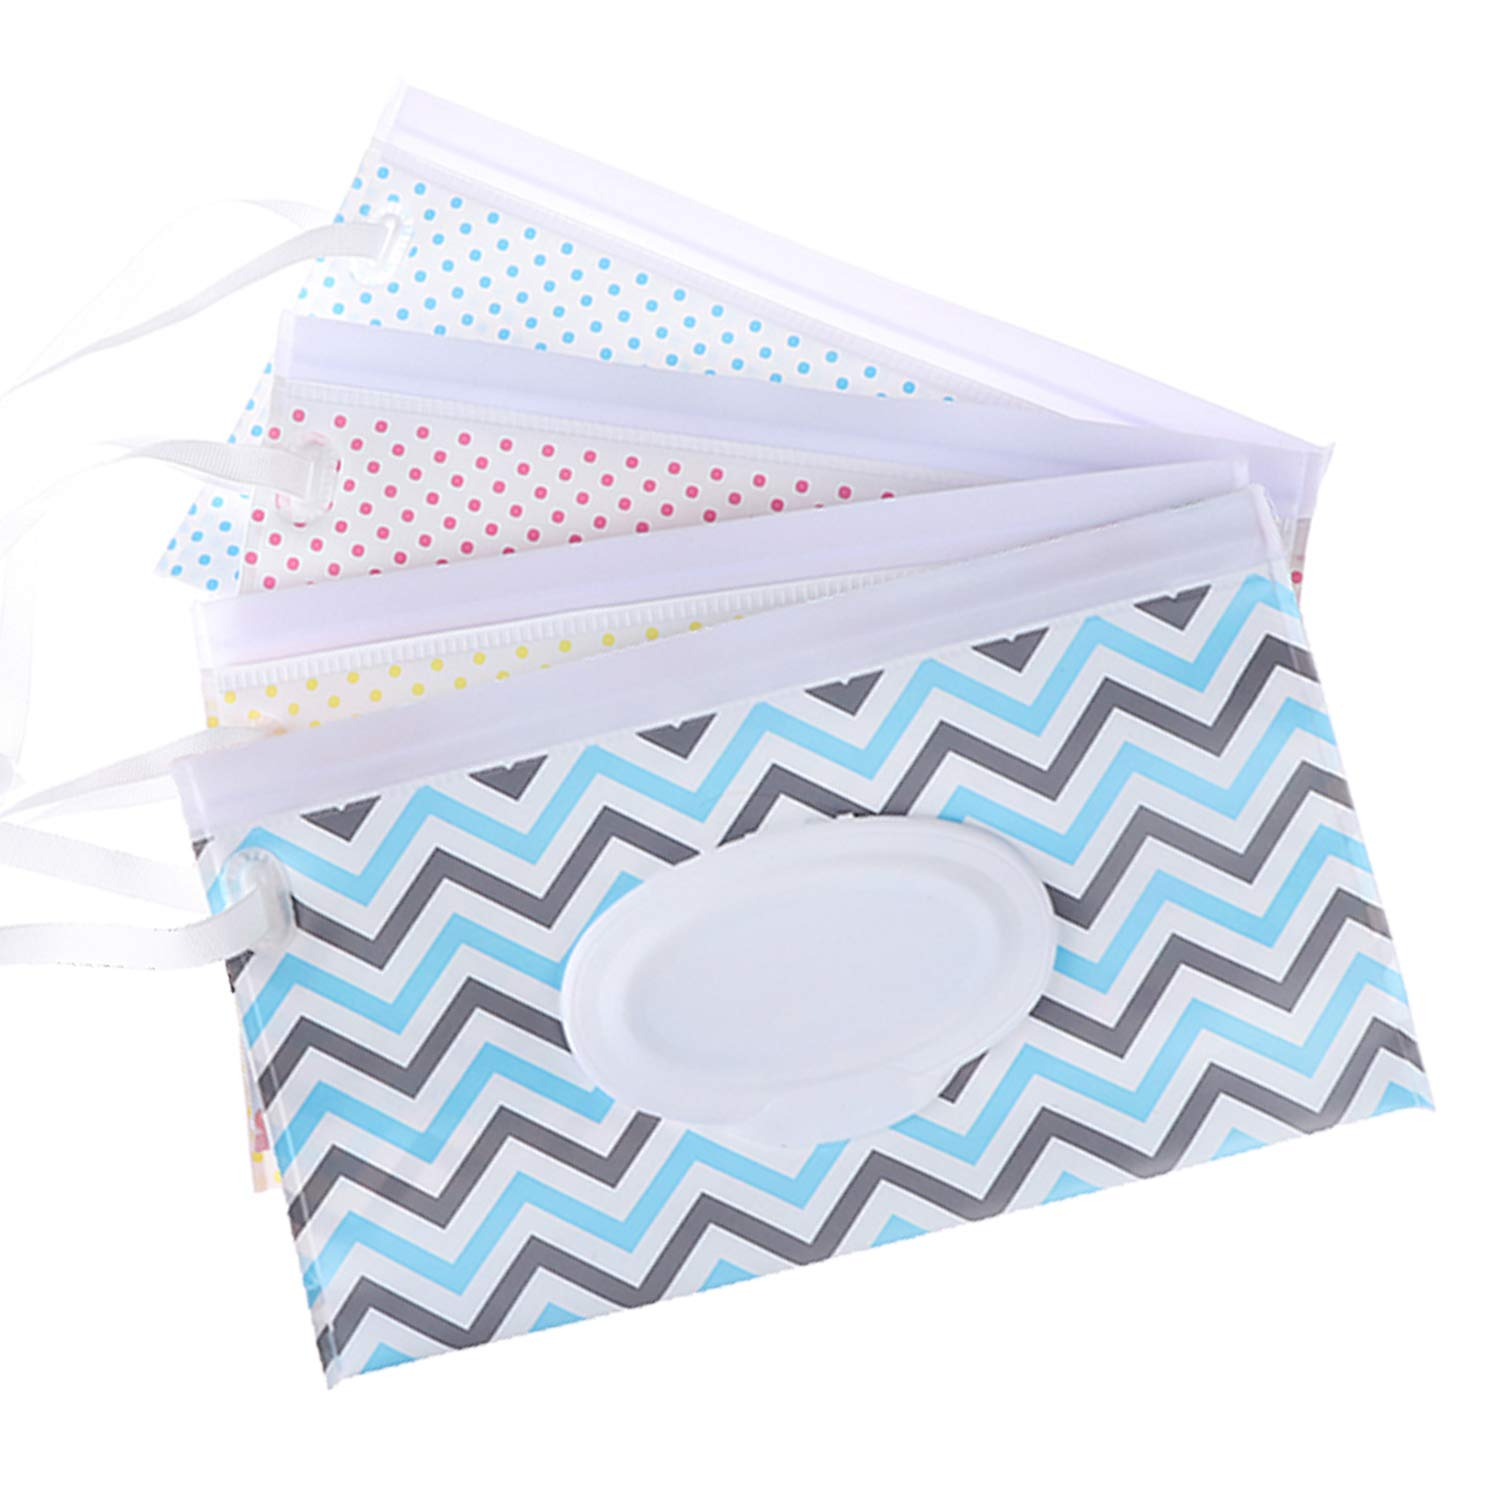 4 Pack Reusable Wet Wipe Pouch Dispenser for Baby or Personal Wipes,Wet Wipe Portable Travel Cases